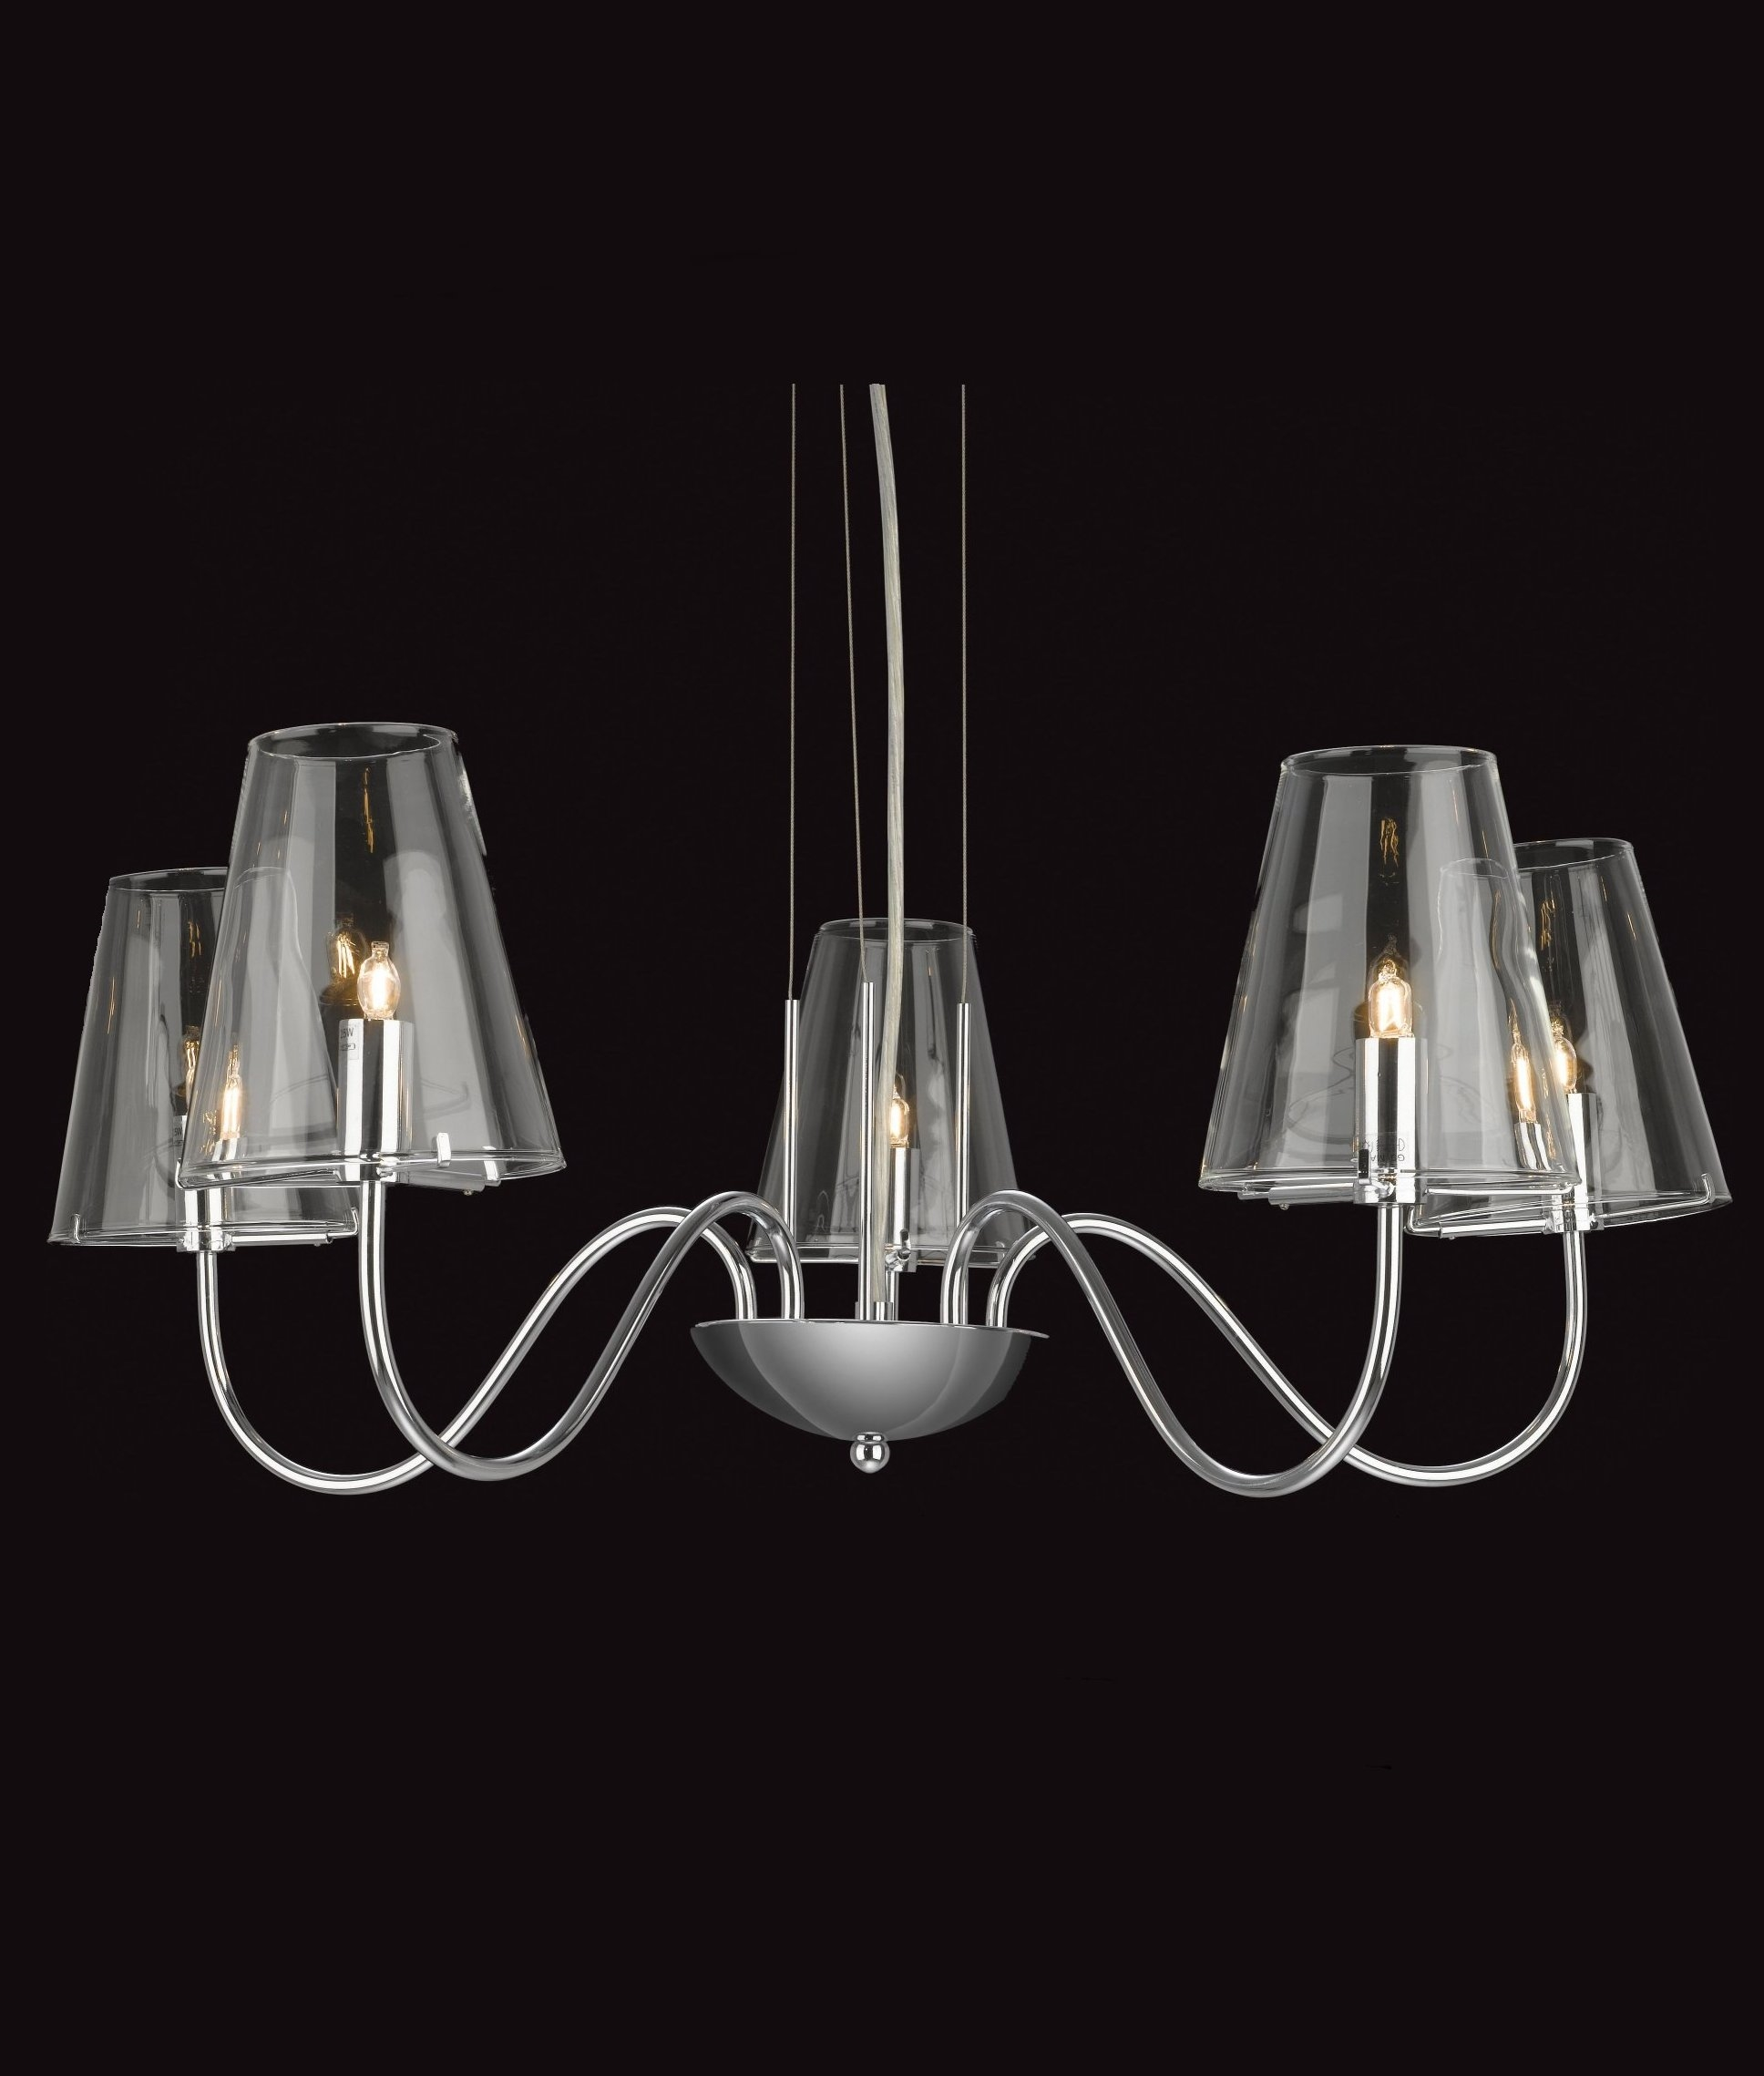 Chandelier Lighting Glass: Chandelier With Chrome & Clear Glass